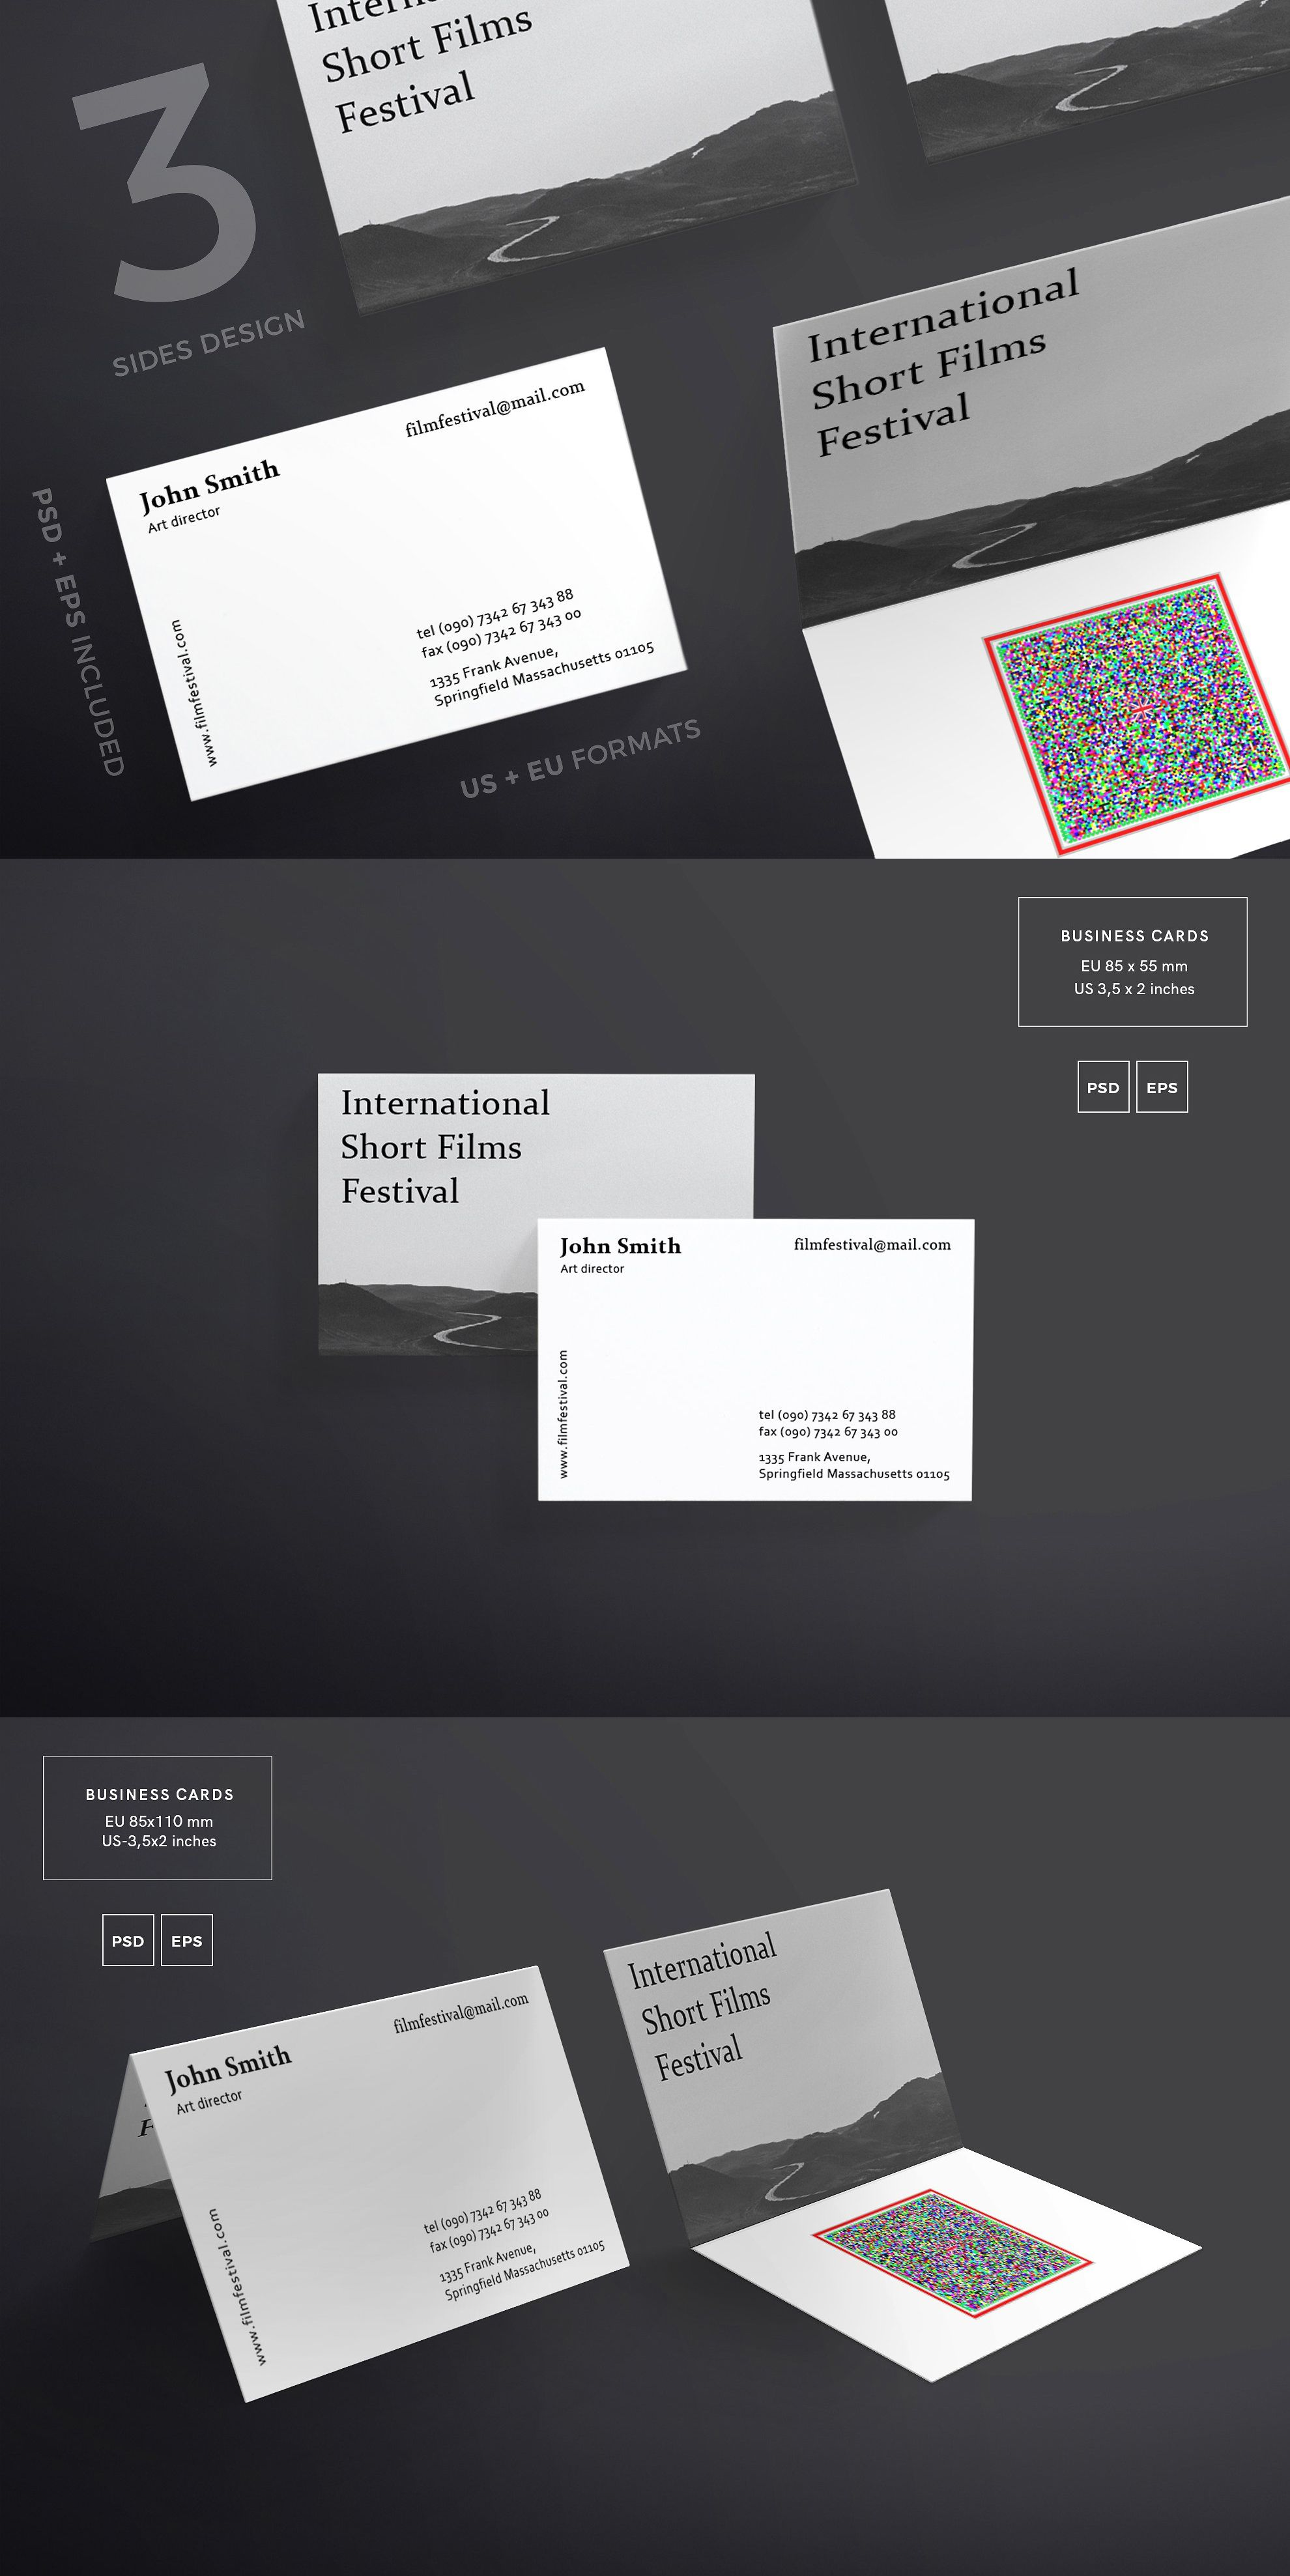 Business cards templates film festival pdf business card business cards templates film festival pdf alramifo Gallery